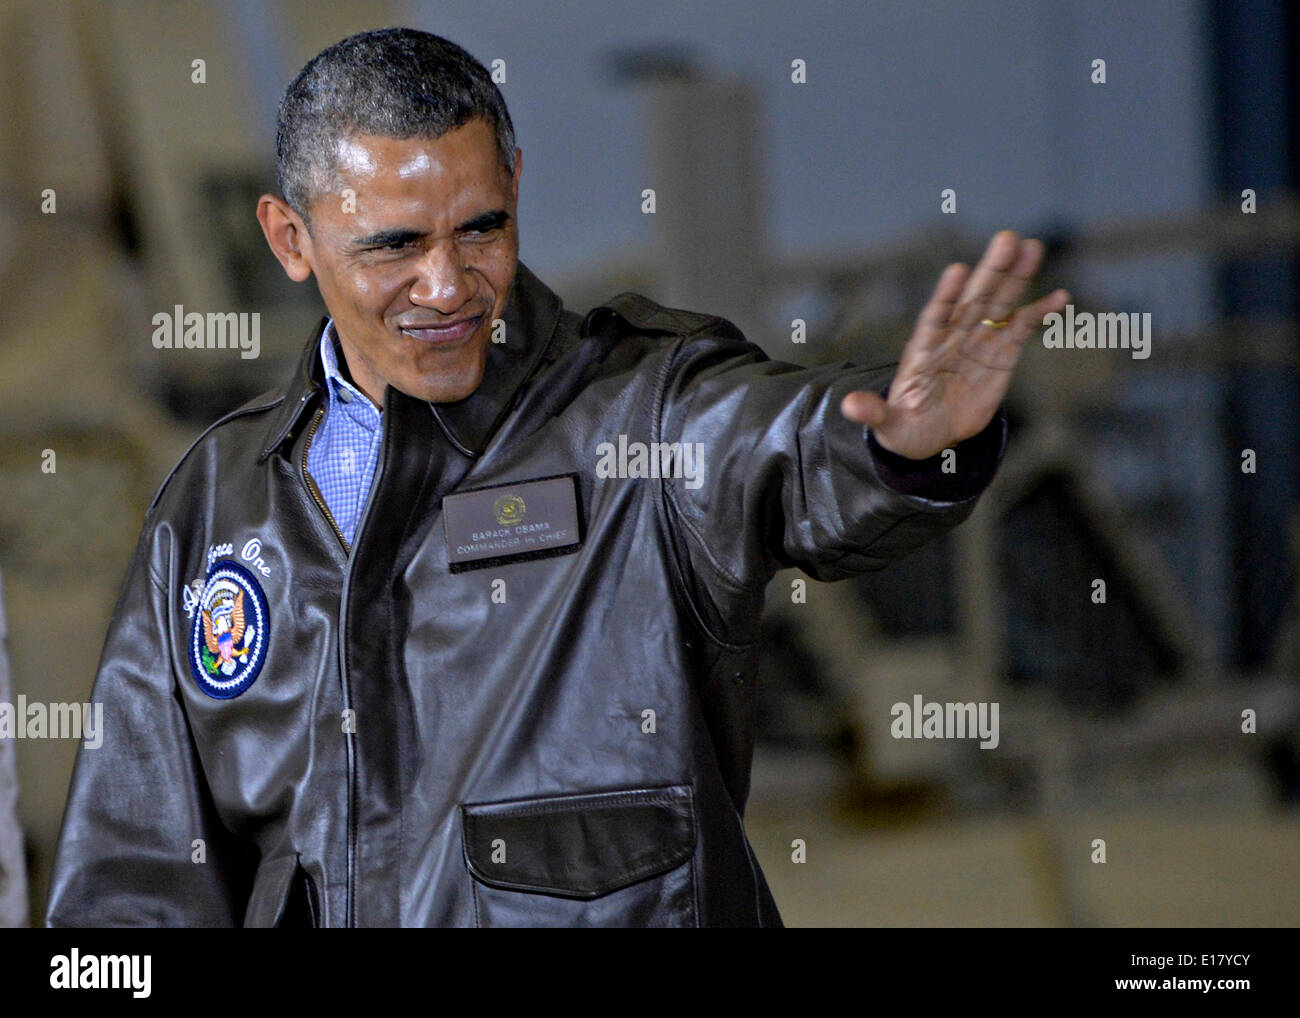 US President Barack Obama waves to soldiers during an unannounced visit to Bagram Air Field May 25, 2014 in Afghanistan. - Stock Image